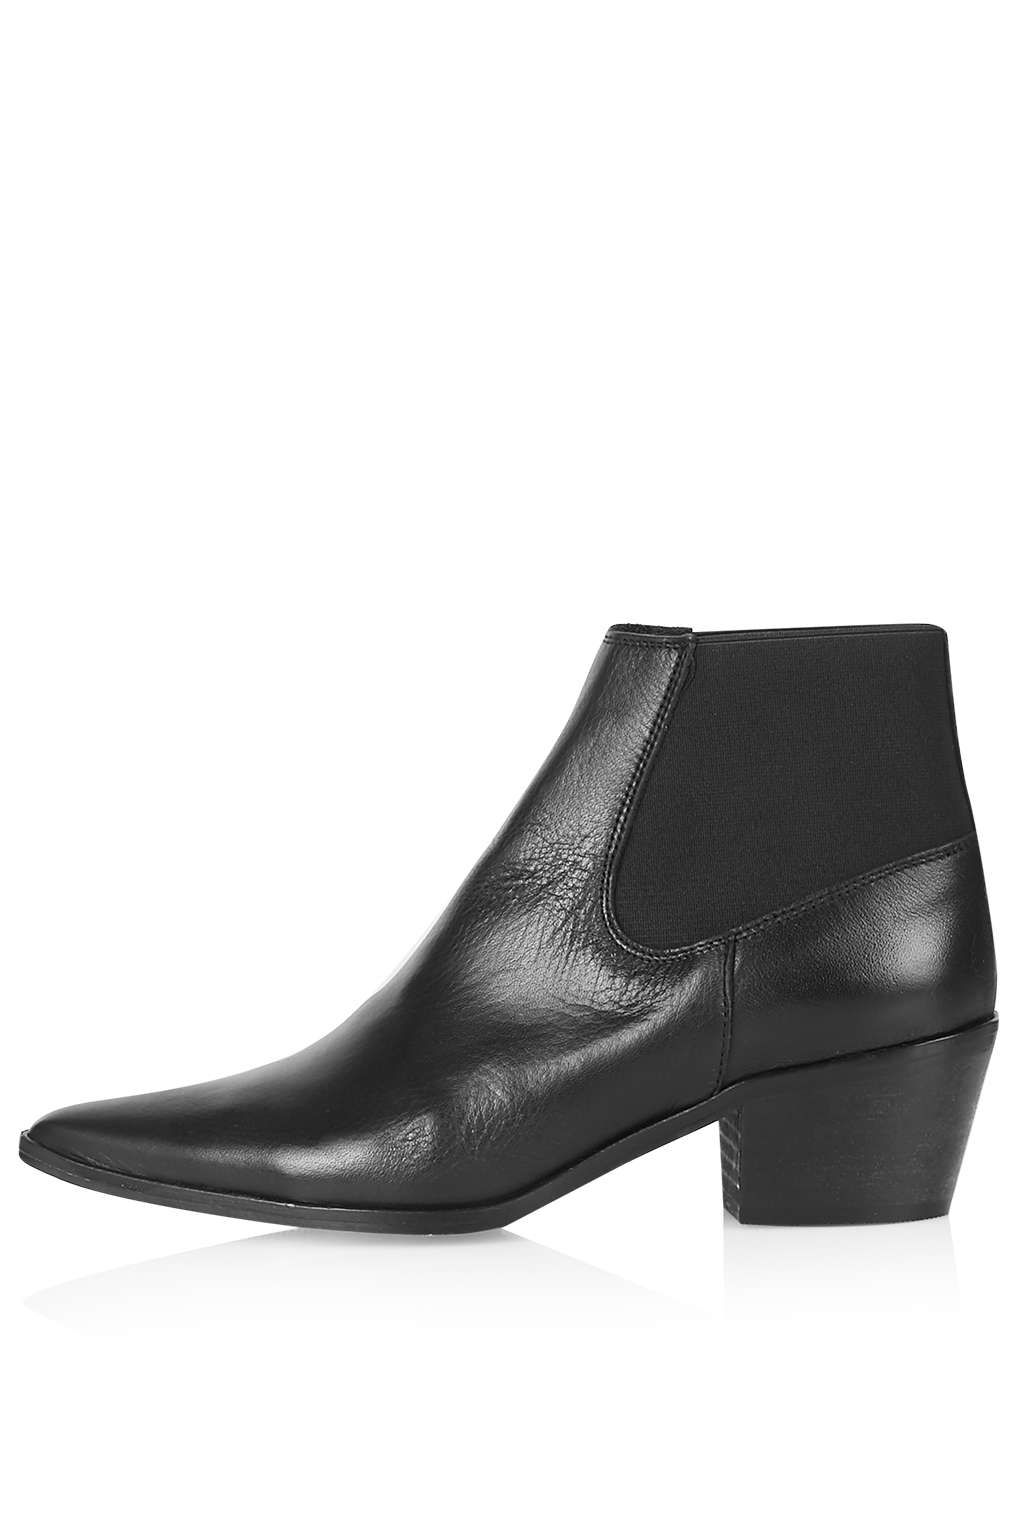 fdf59b1769c MARR Leather Ankle Boots - Topshop | Wish List | Boots, Shoe boots ...